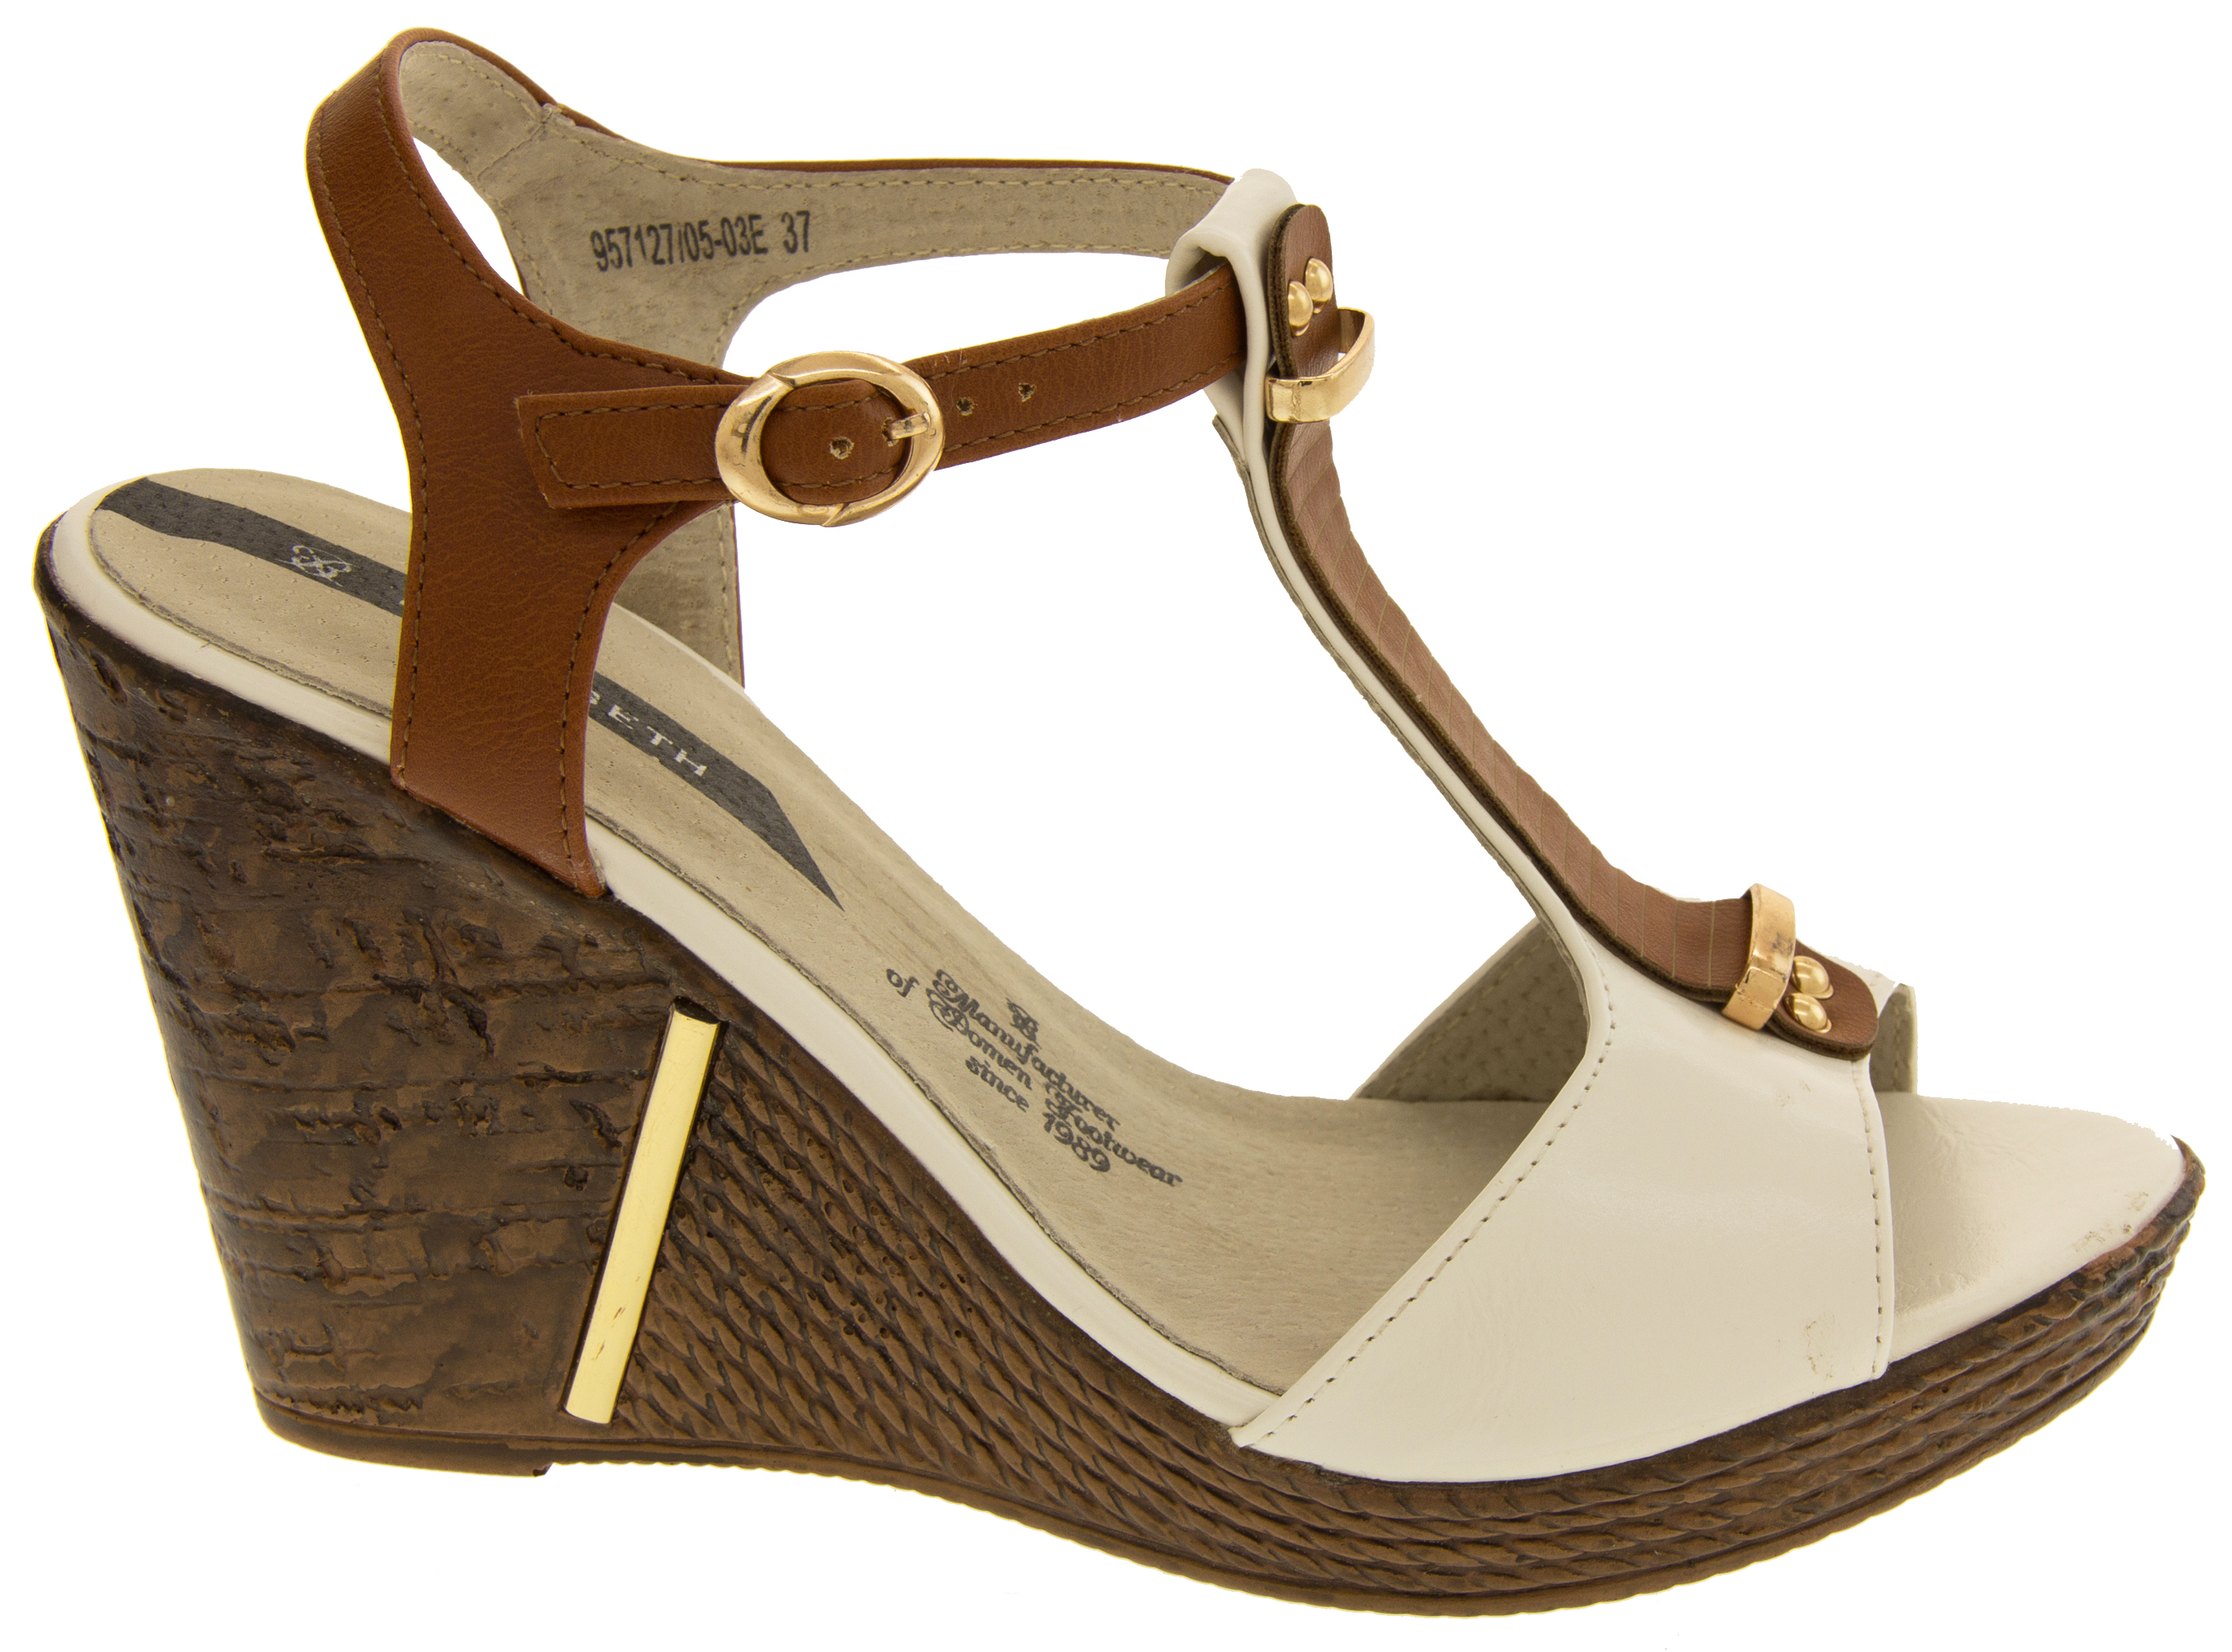 bcdcb54b89a Sentinel Womens Elisabeth Wedge High Heels Sandals Platform Strappy Shoes  Size 4 6 7 8